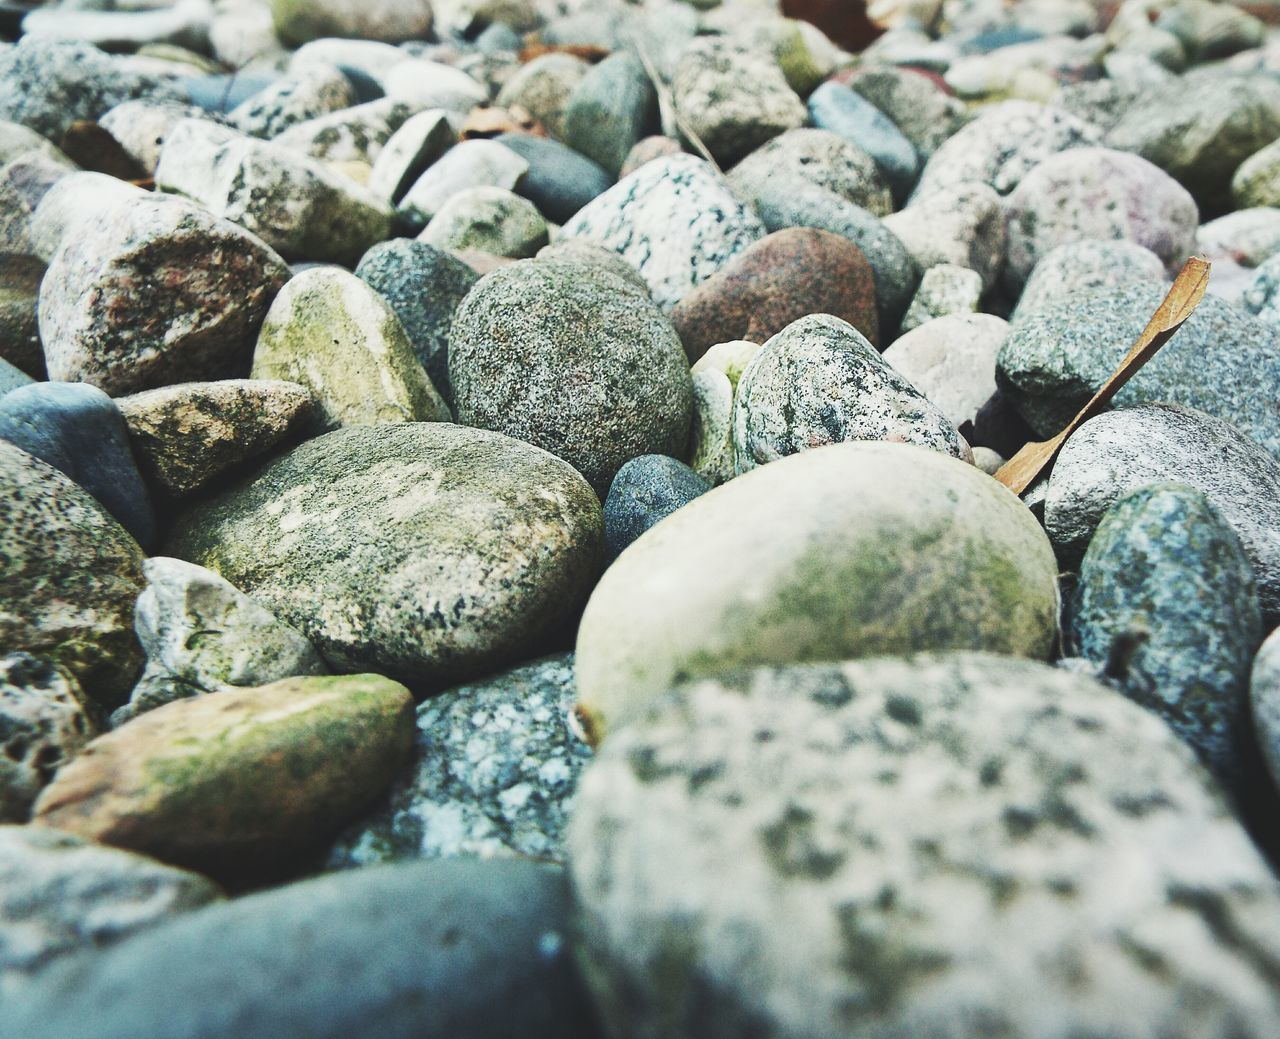 Texture Outdoors Paths Rocks Stones Colors Minerals Viewpoint Angles Of Nature Getting Low